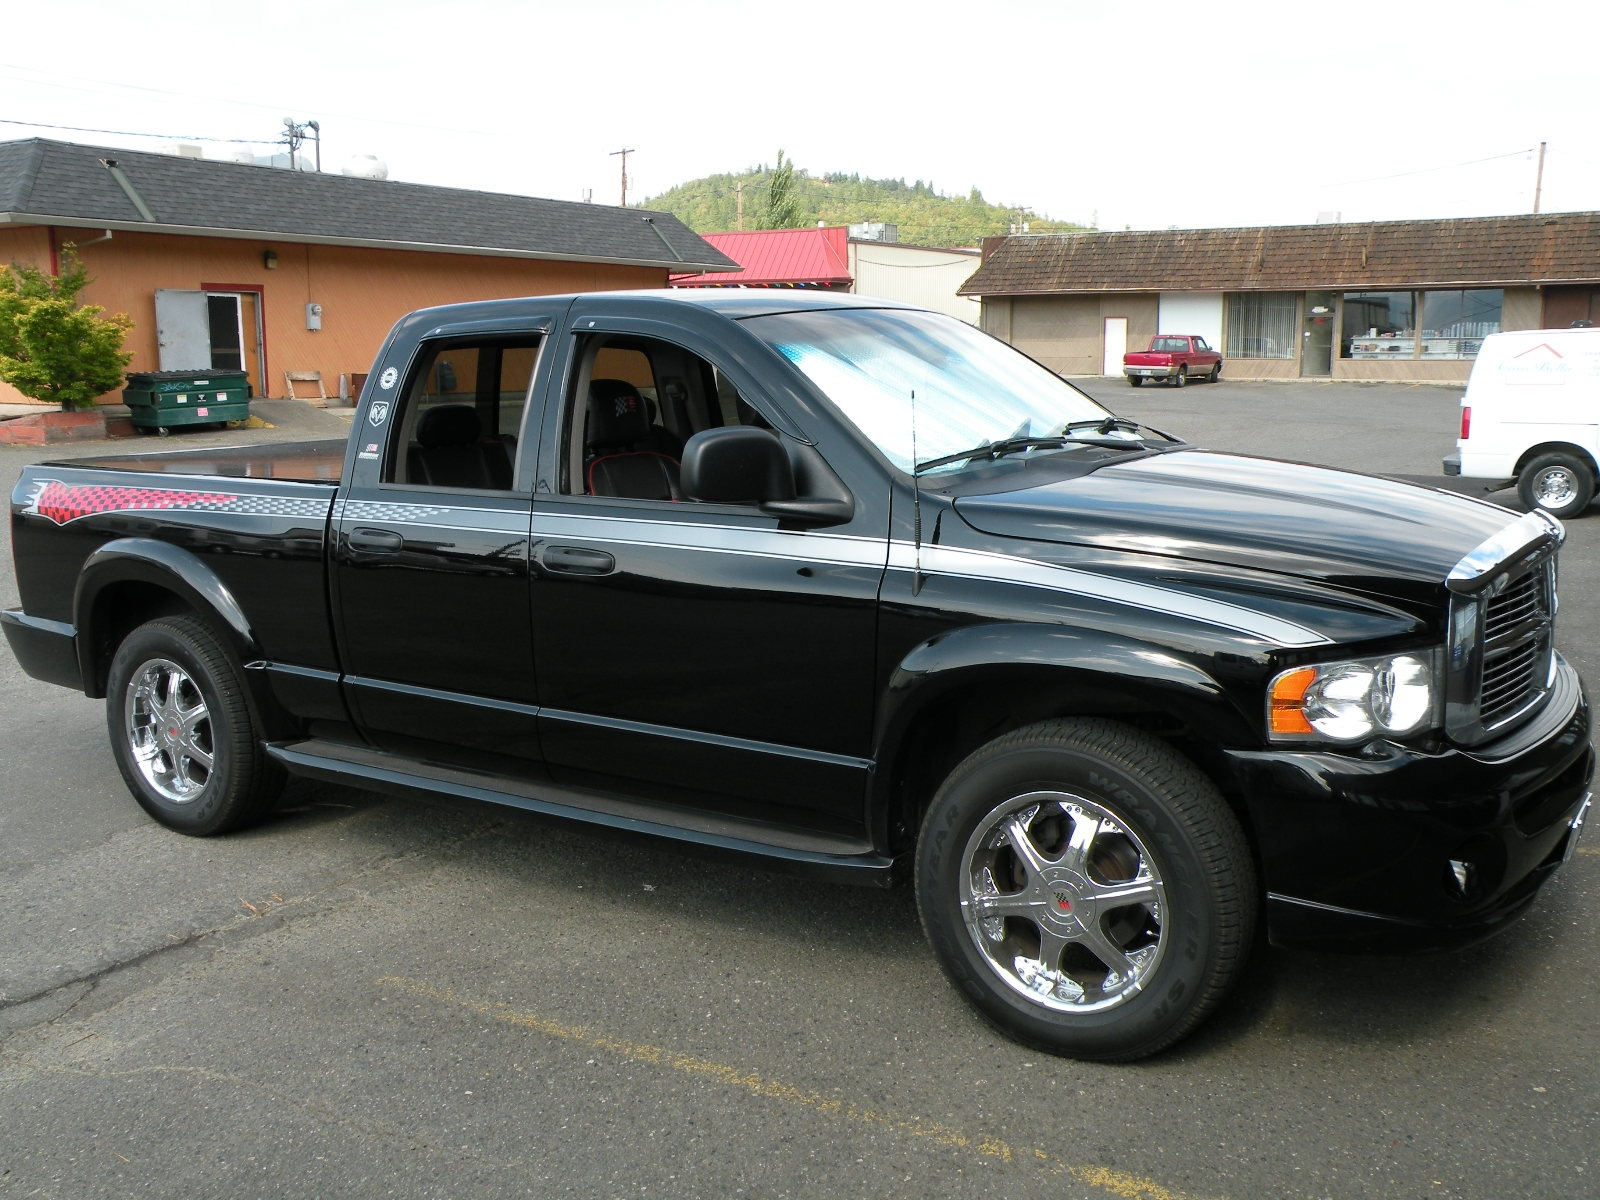 rronthego 2004 dodge ram 1500 quad cab specs photos modification info at cardomain. Black Bedroom Furniture Sets. Home Design Ideas